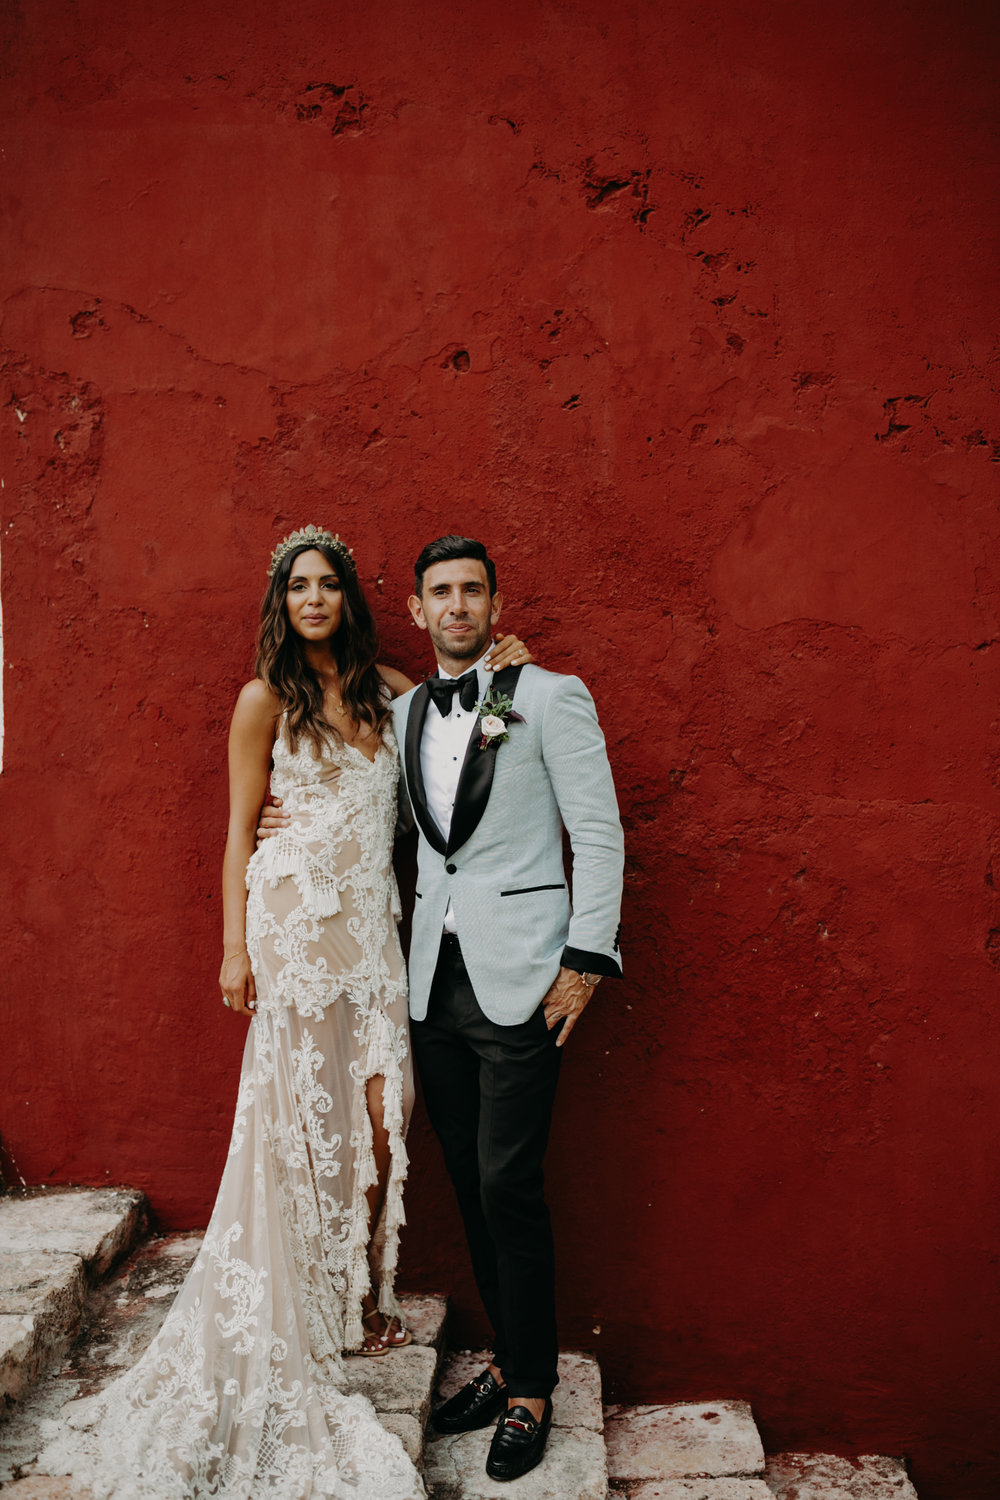 Hacienda Temozon Yucatan Mexico Wedding | Ida & Peter Emily Magers Photography-712.jpg